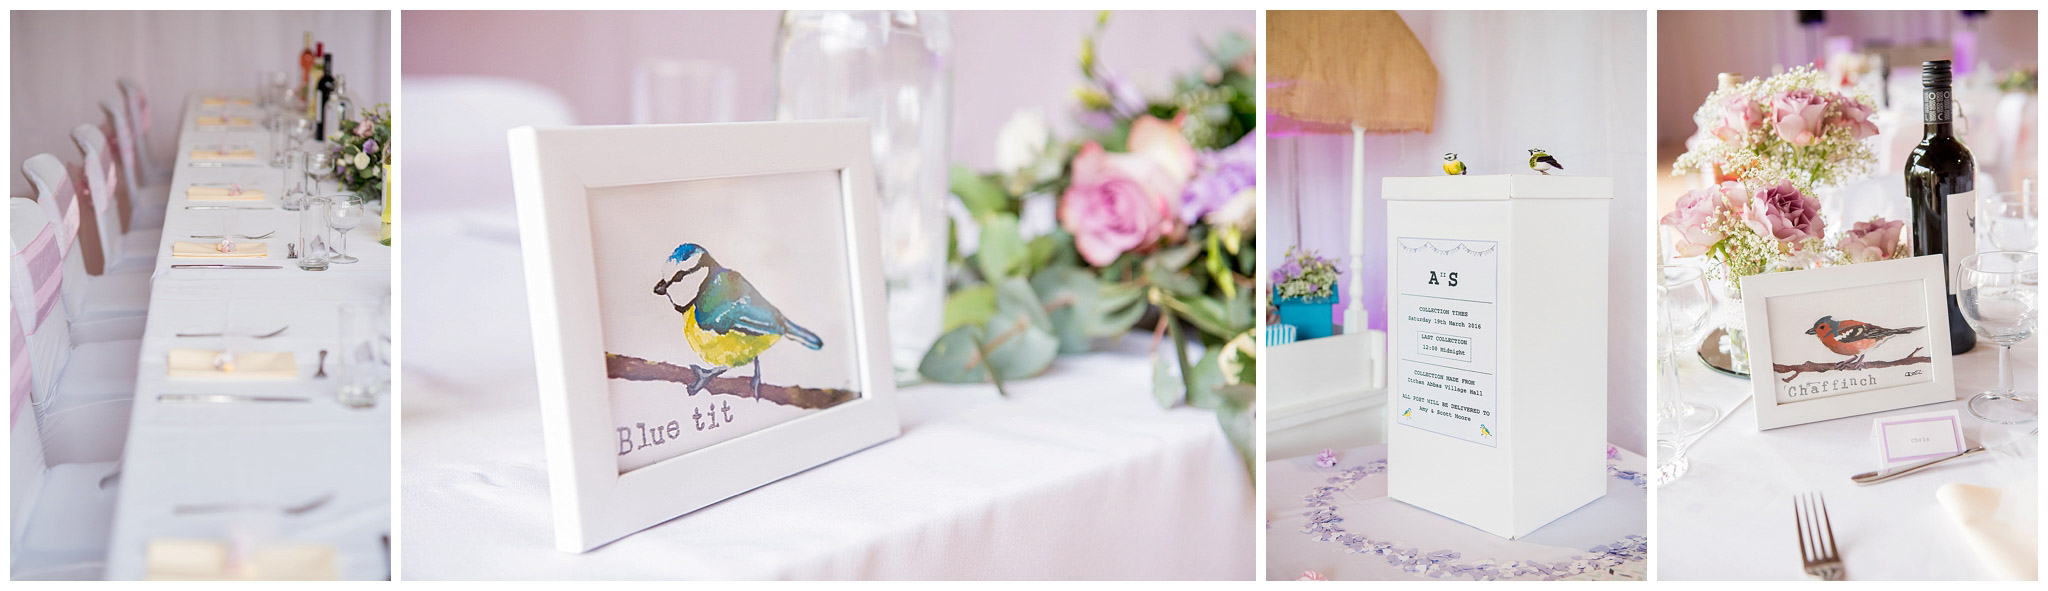 stationary, flowers, diy hand painted bird table numbers